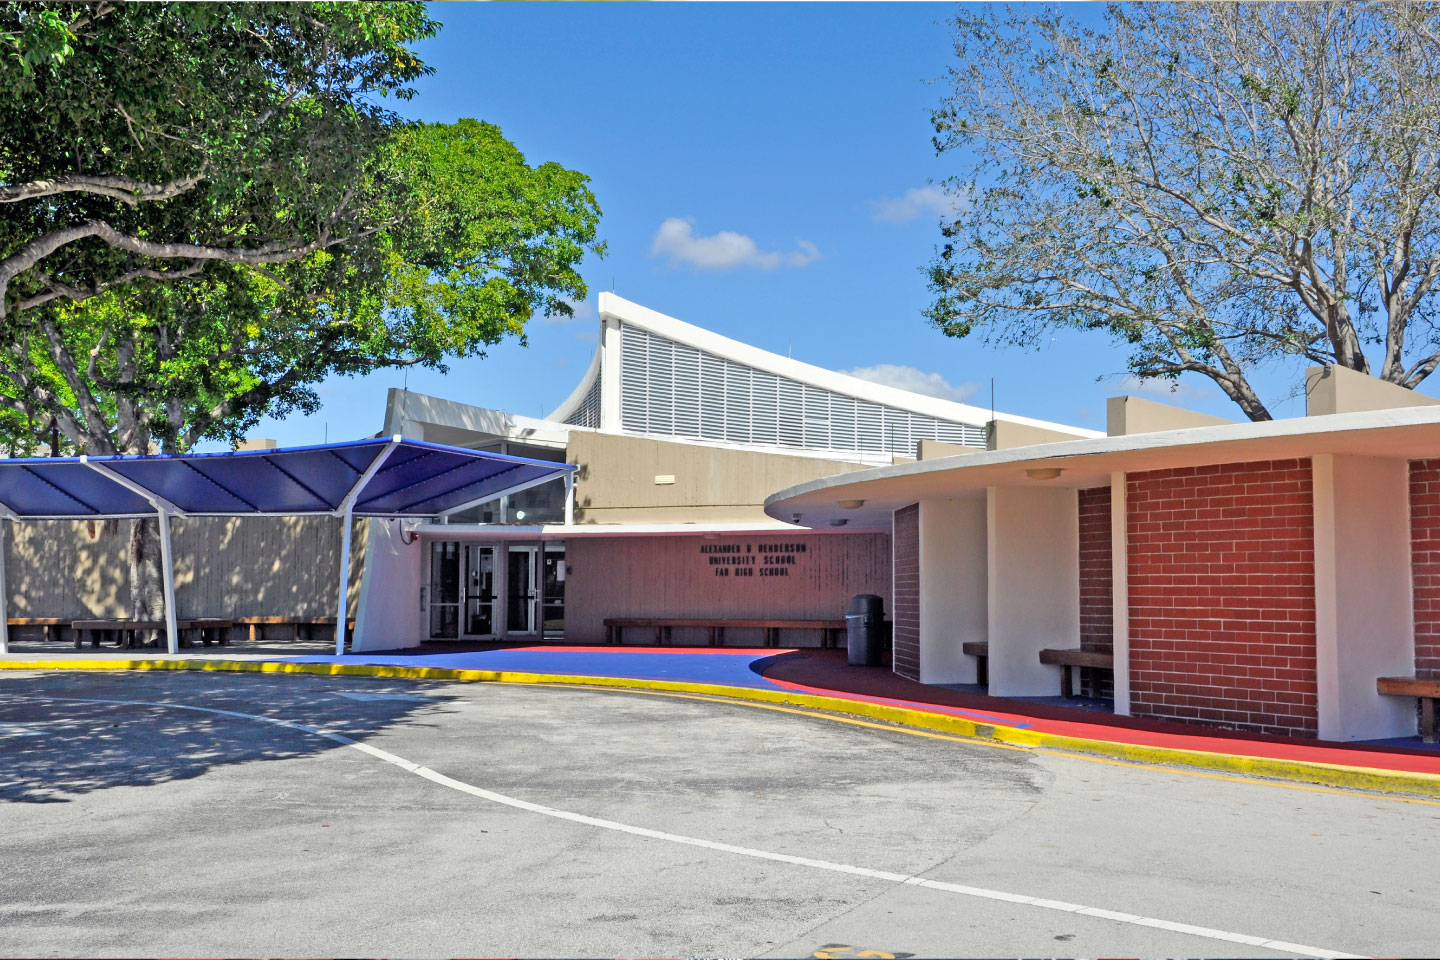 A.D. HENDERSON & FAU HIGH SCHOOL